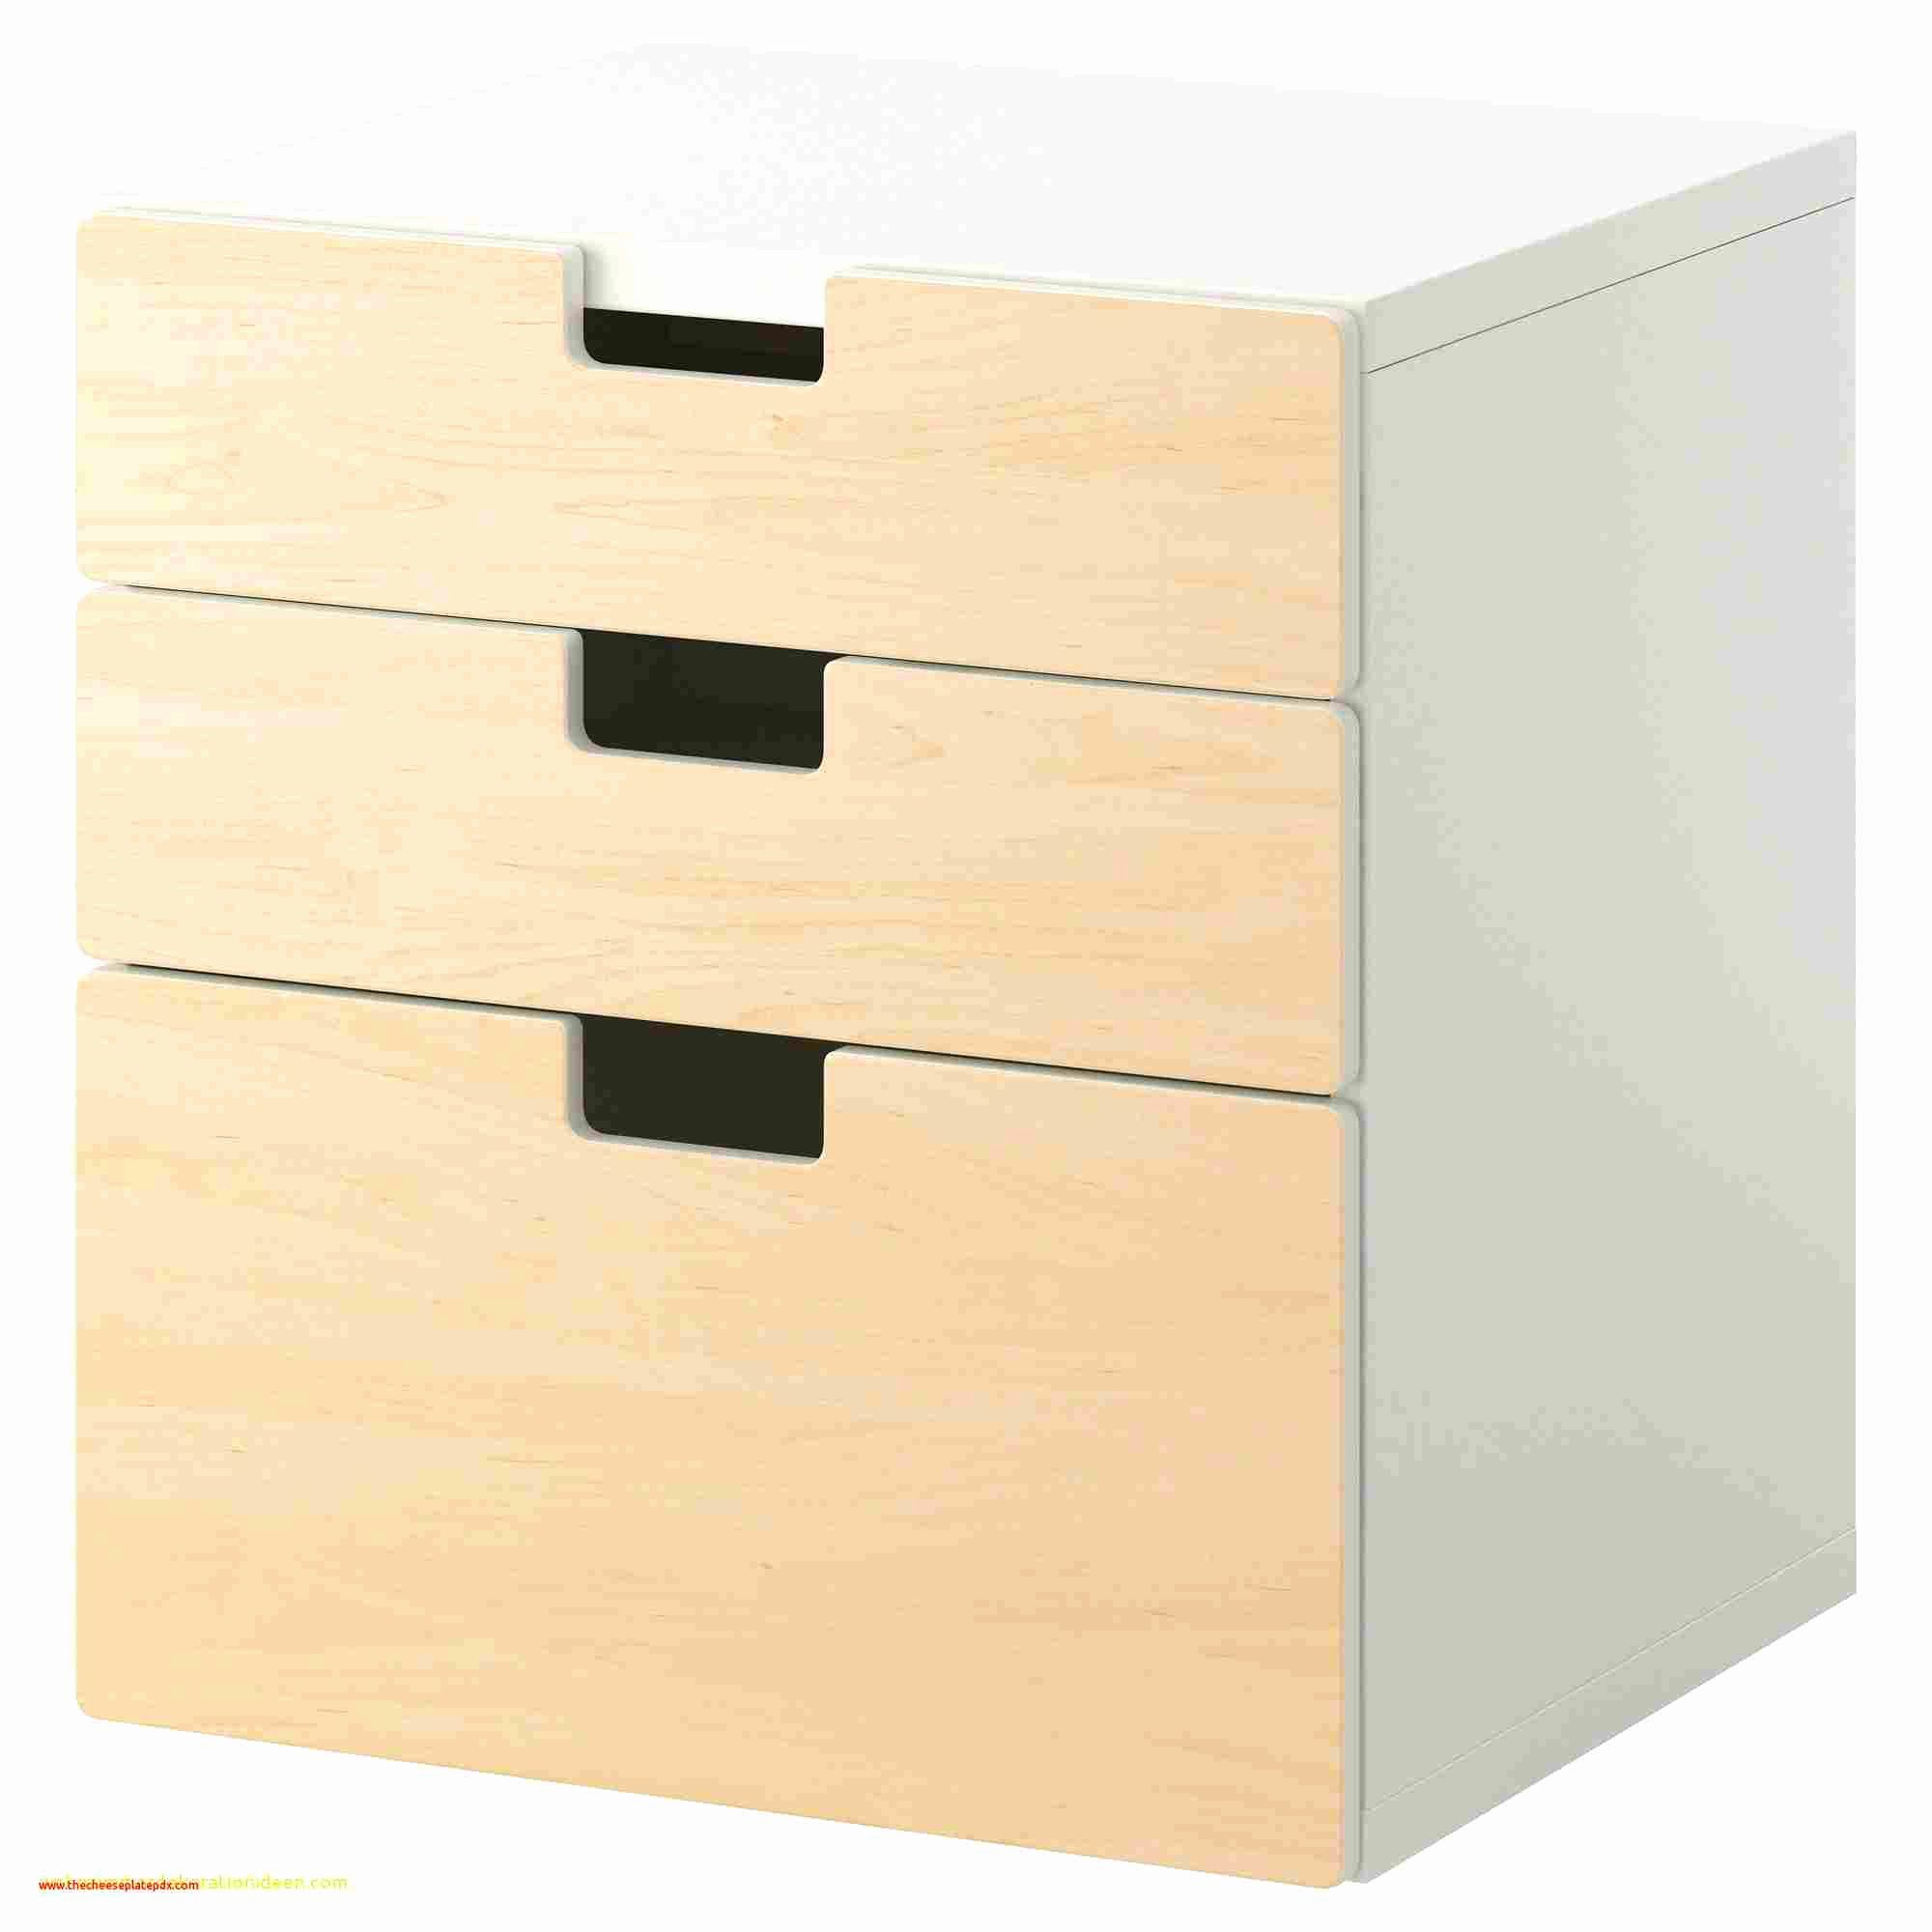 Badezimmer Schrank 32 Cm Breit Collection In 2020 Decor Cabinet Furniture